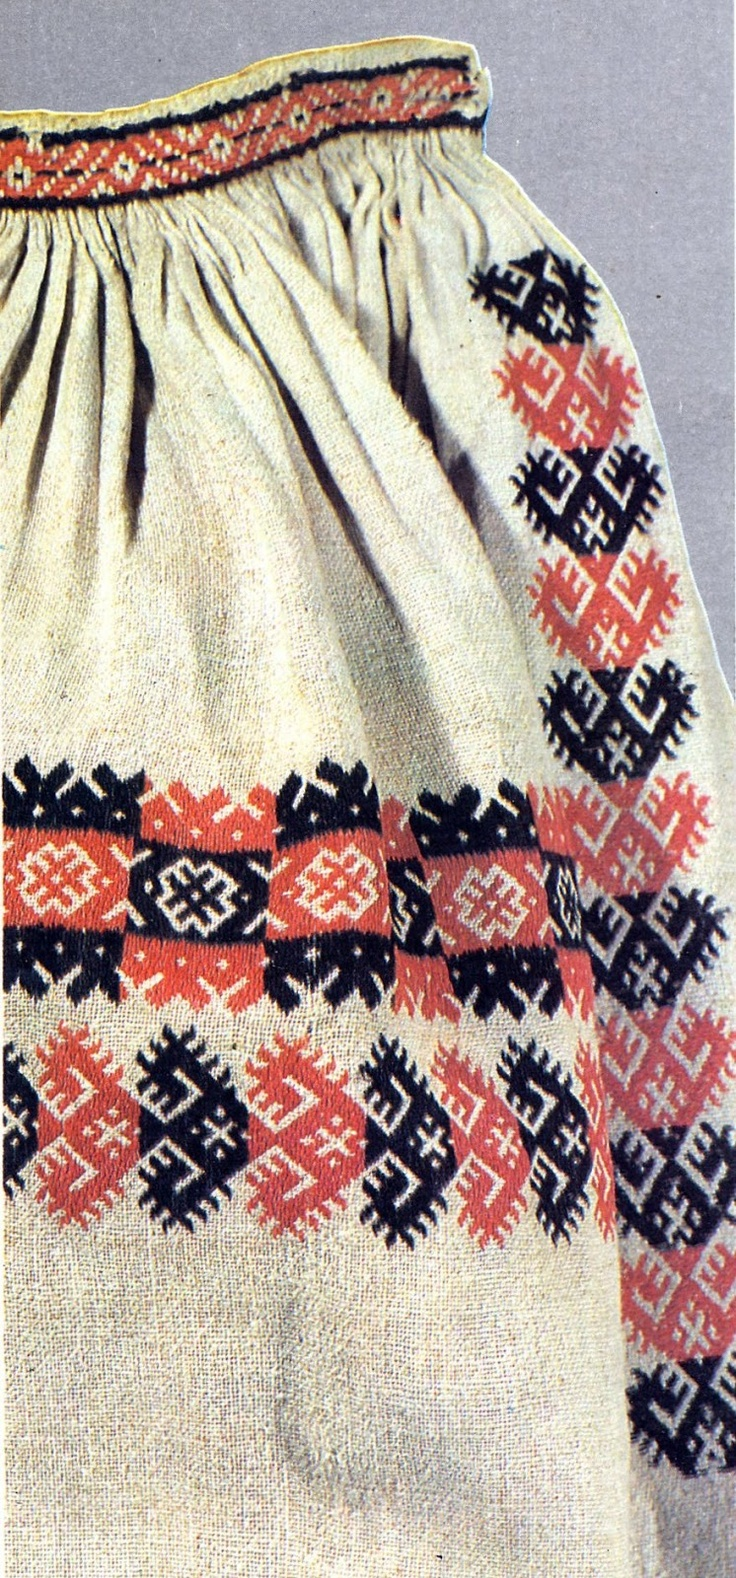 FolkCostume: Nyz embroidery of Eastern Podillia, Ukraine